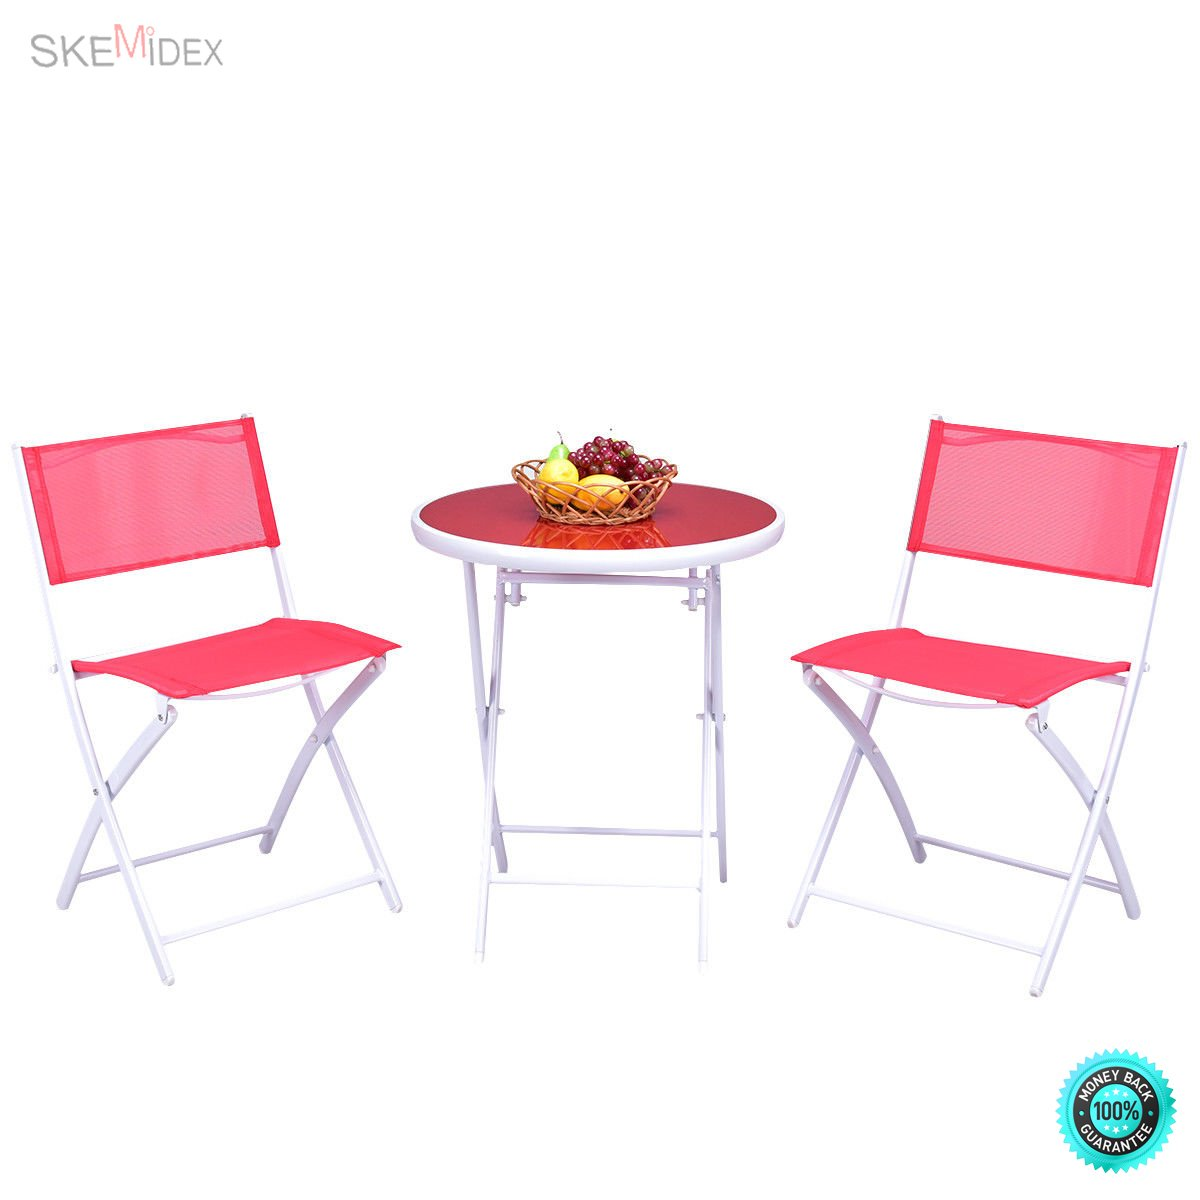 SKEMiDEX 3 PCS Folding Bistro Table Chairs Set Garden Backyard Patio Furniture Red New It enjoyable to have breakfast or afternoon tea in the garden or other outside space with this comfortable